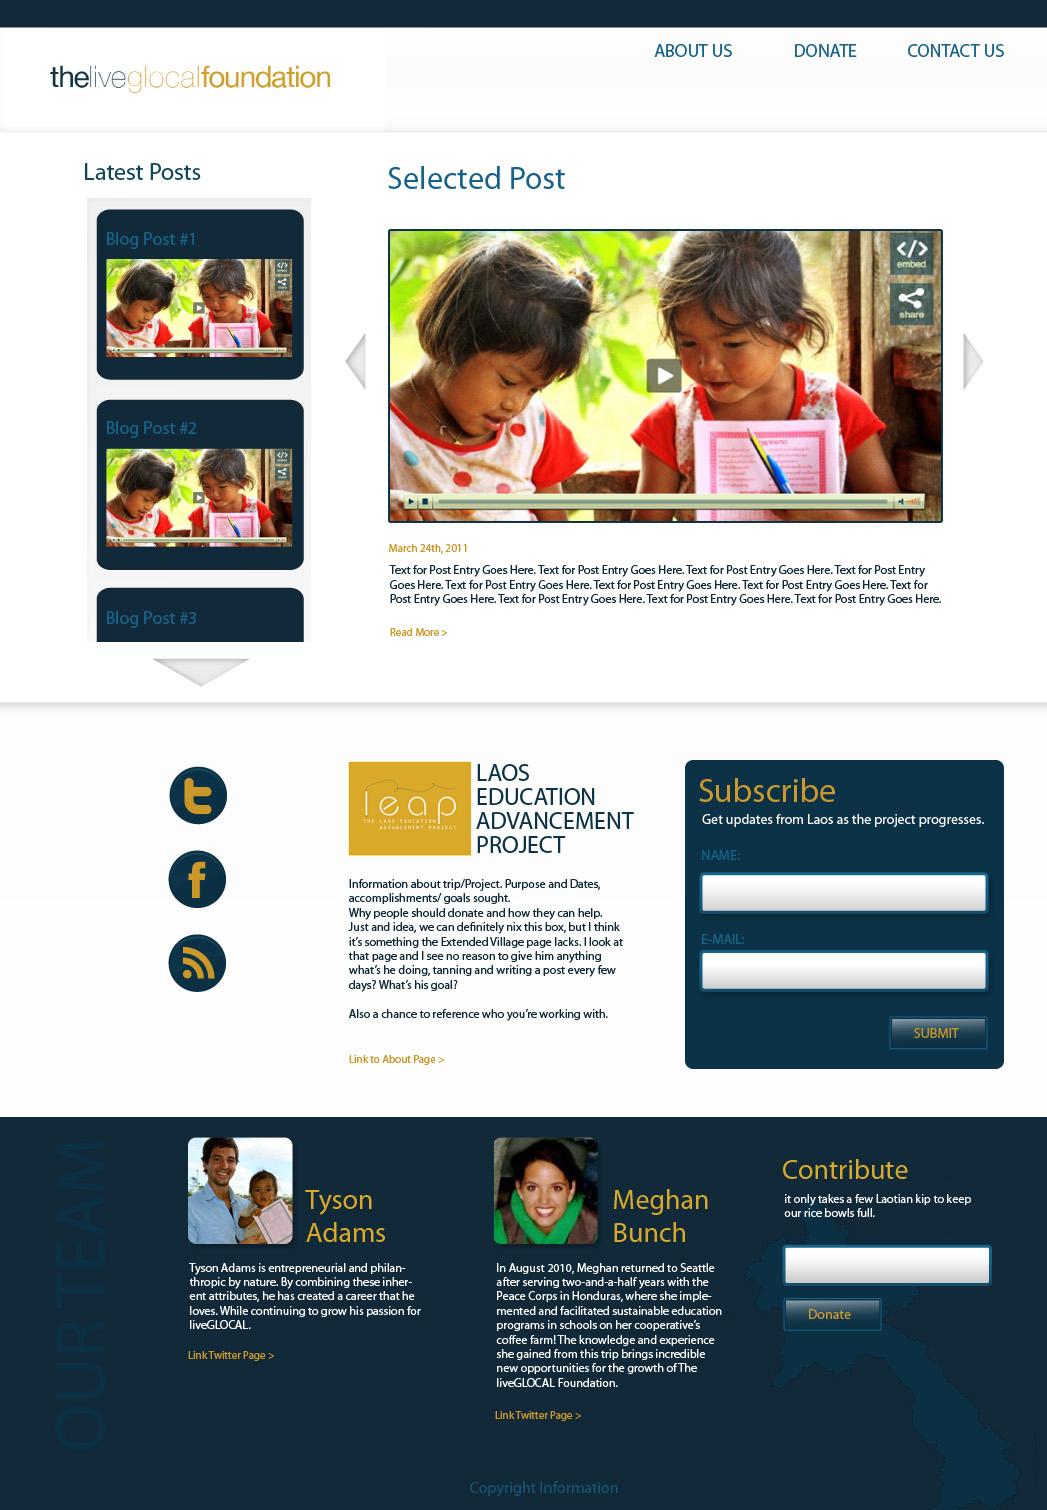 The LiveGlocal Foundation website design